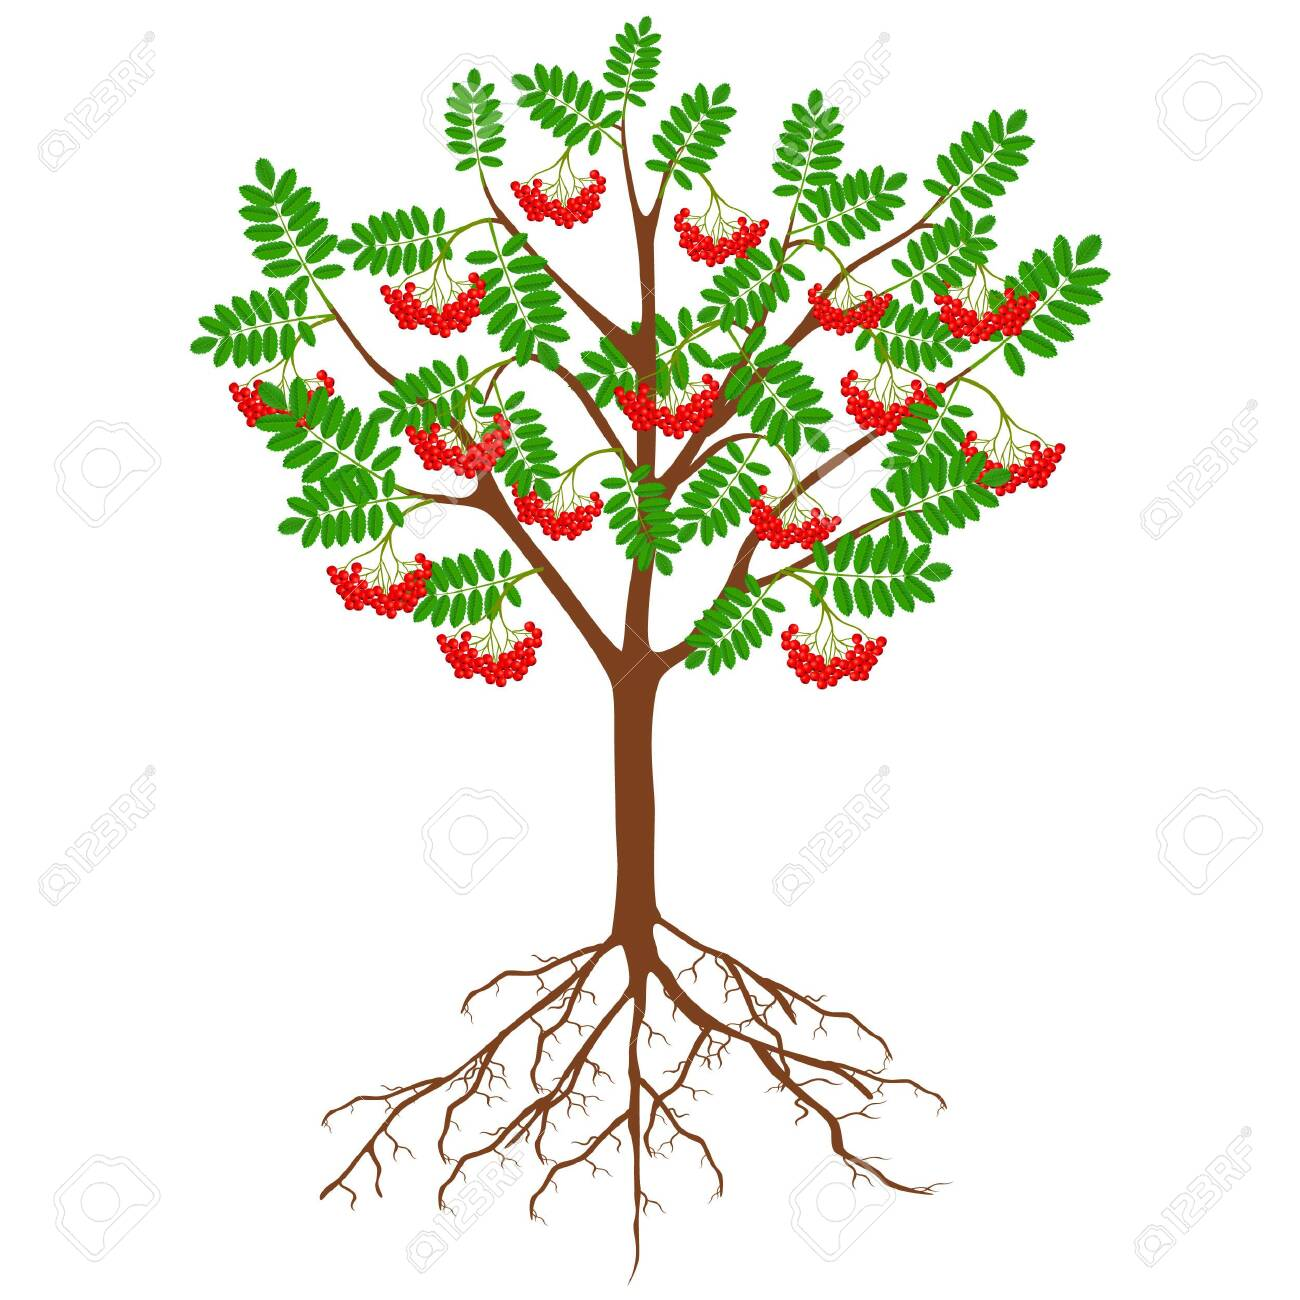 Red rowan with berries and roots on a white background. - 146834351